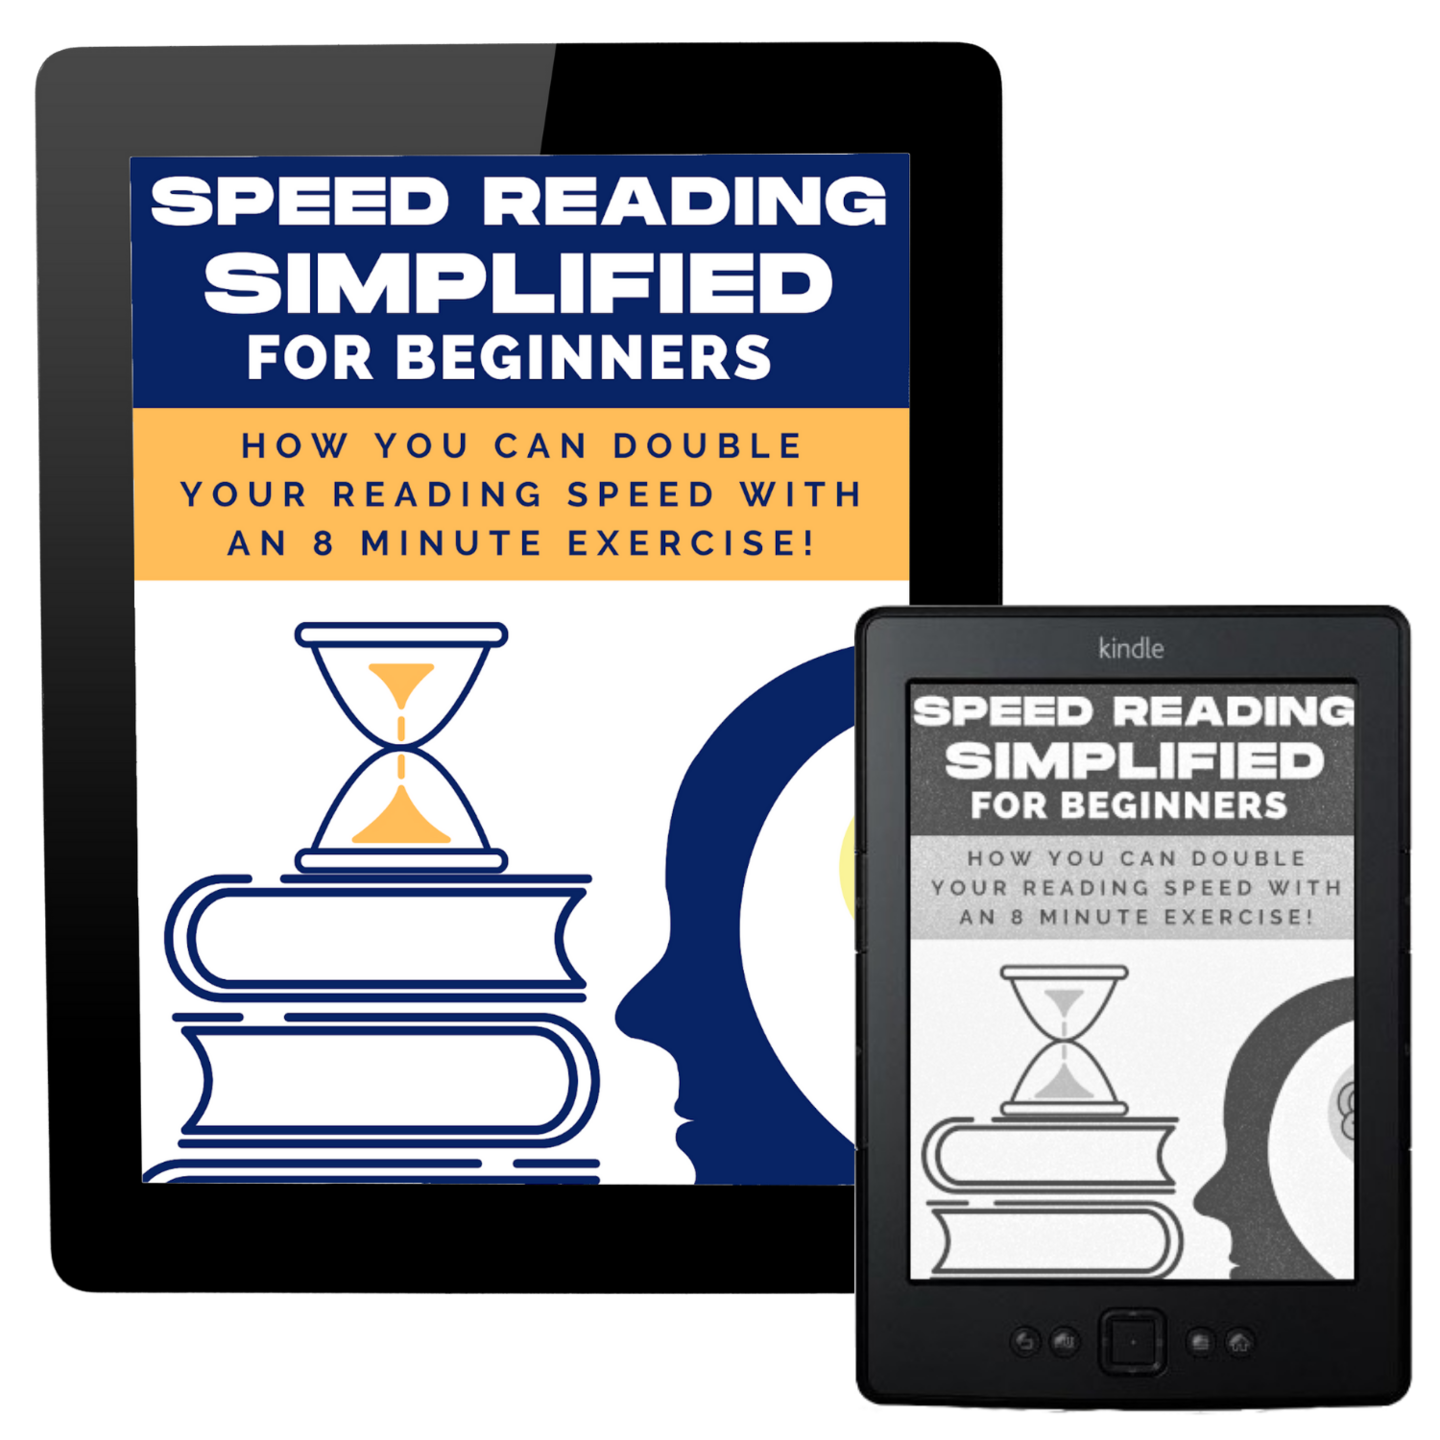 Speed Reading Simplified for Beginners: How You Can Double Your Reading Speed With an 8 Minute Exercise!